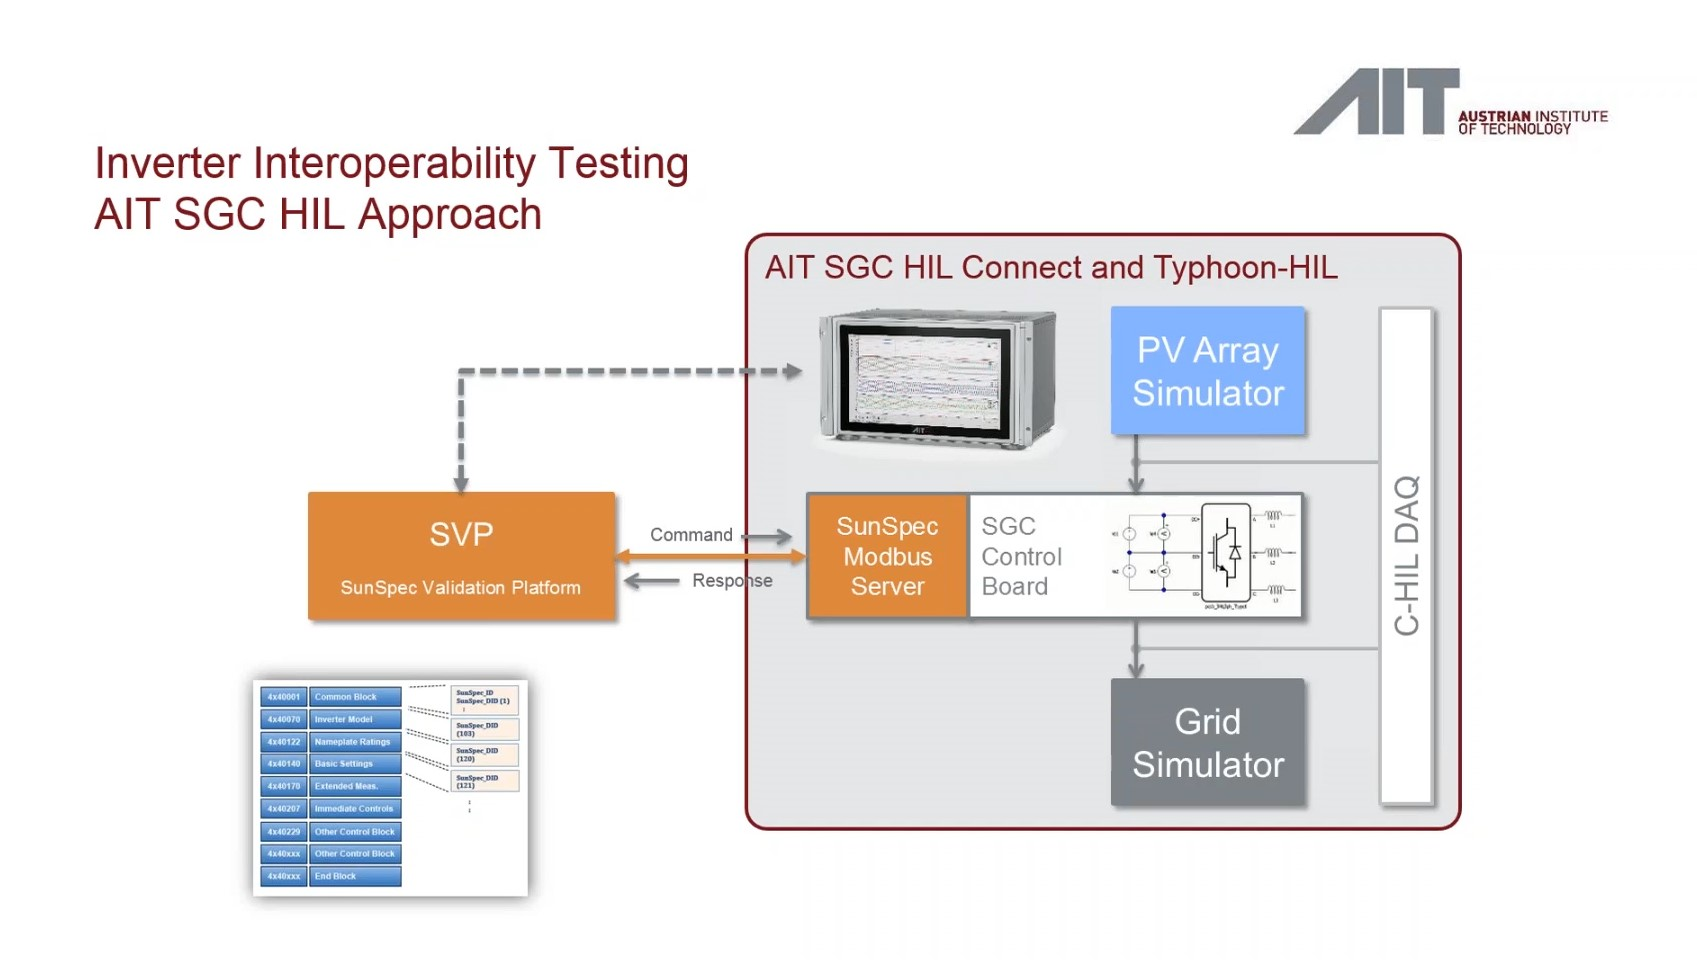 Inverter Interoperability Testing with hardware in the loop